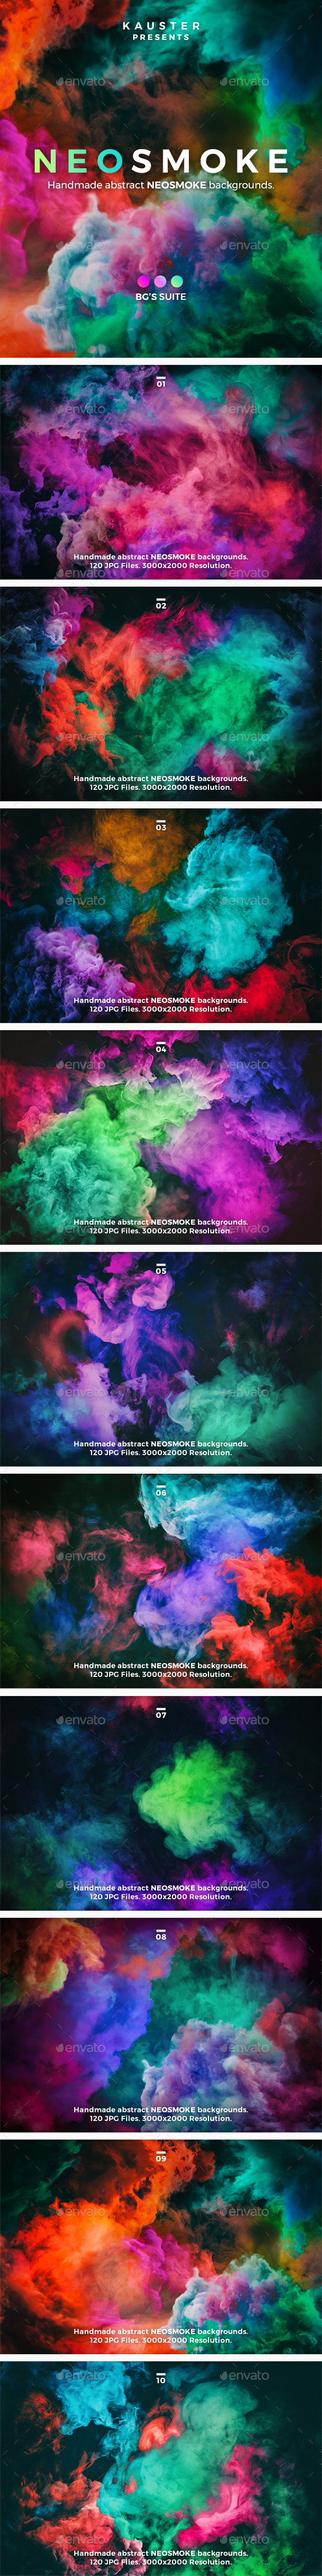 Neosmoke Backgrounds - Abstract Backgrounds